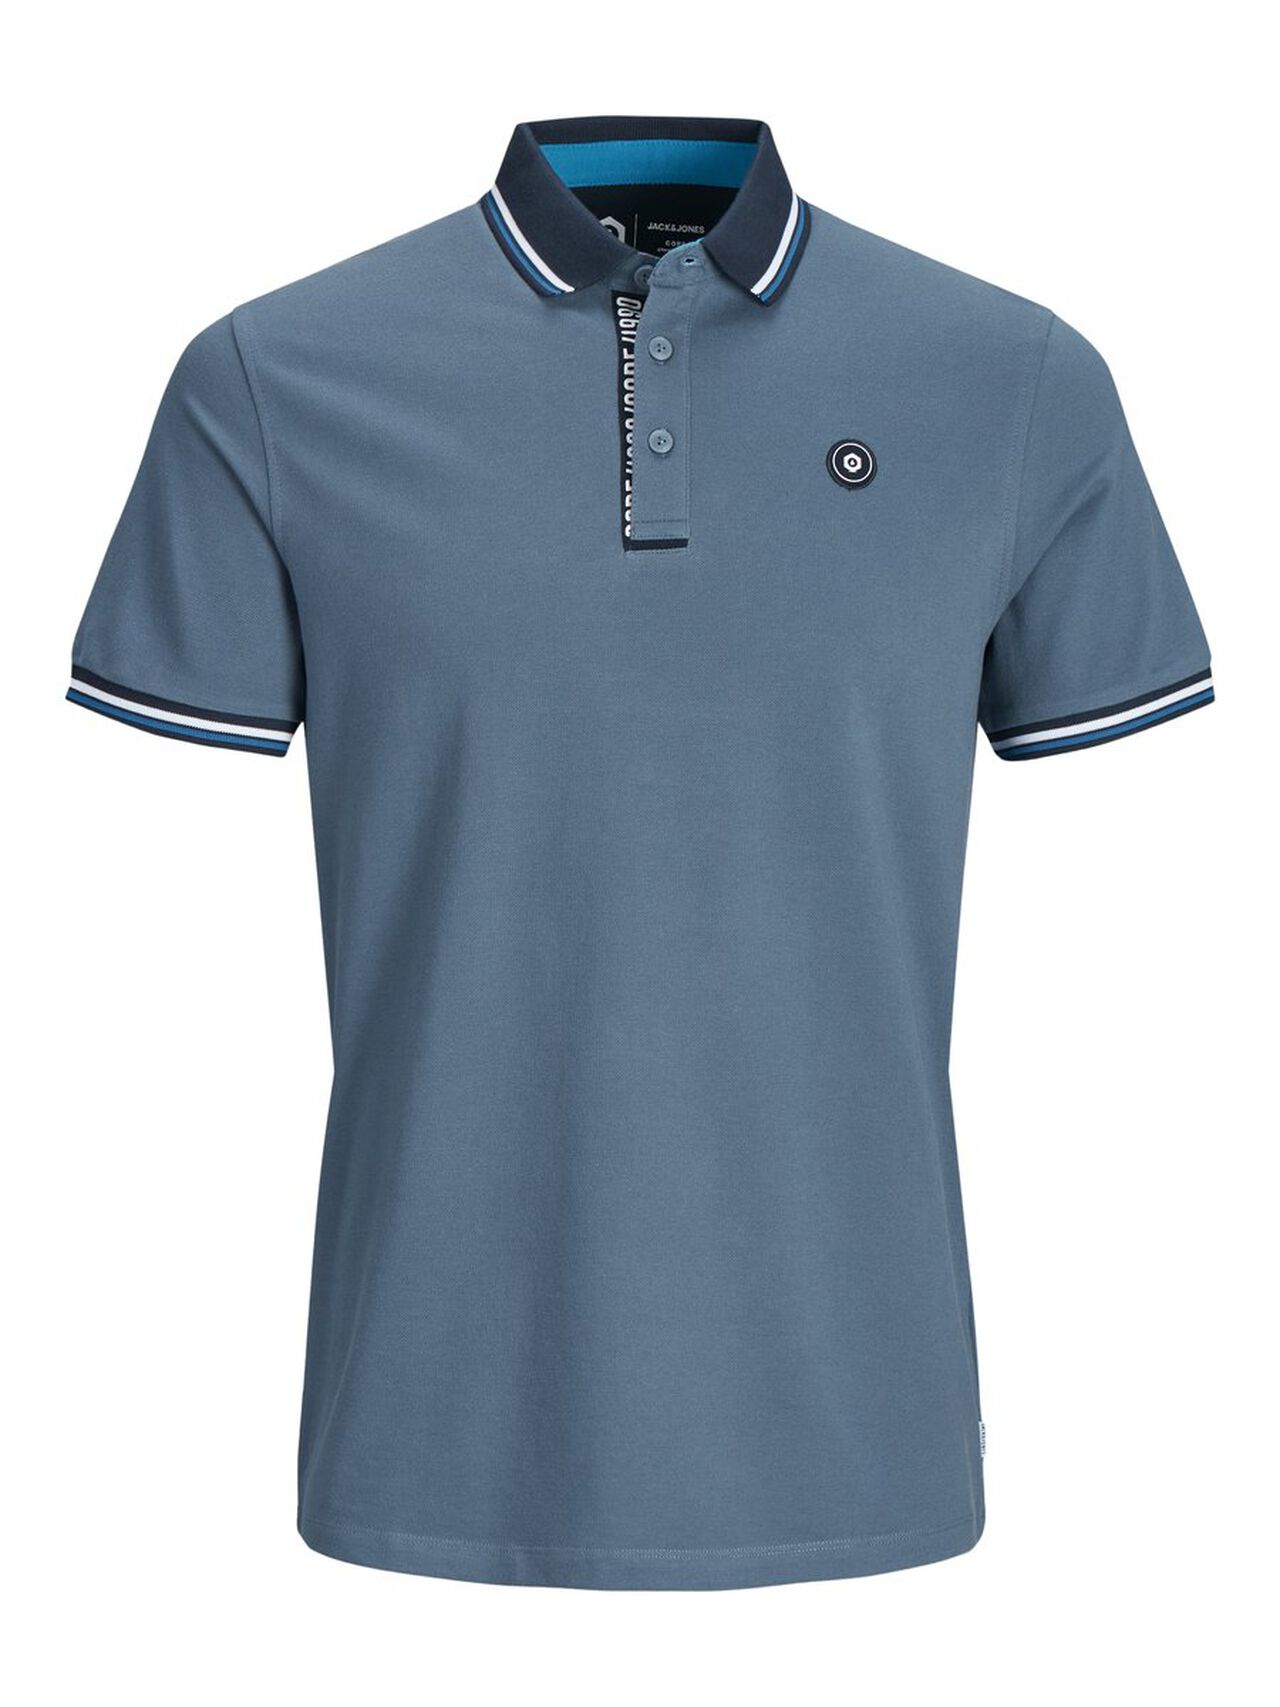 acquisto genuino tecniche moderne tecnologie sofisticate Urban polo shirt | JACK & JONES